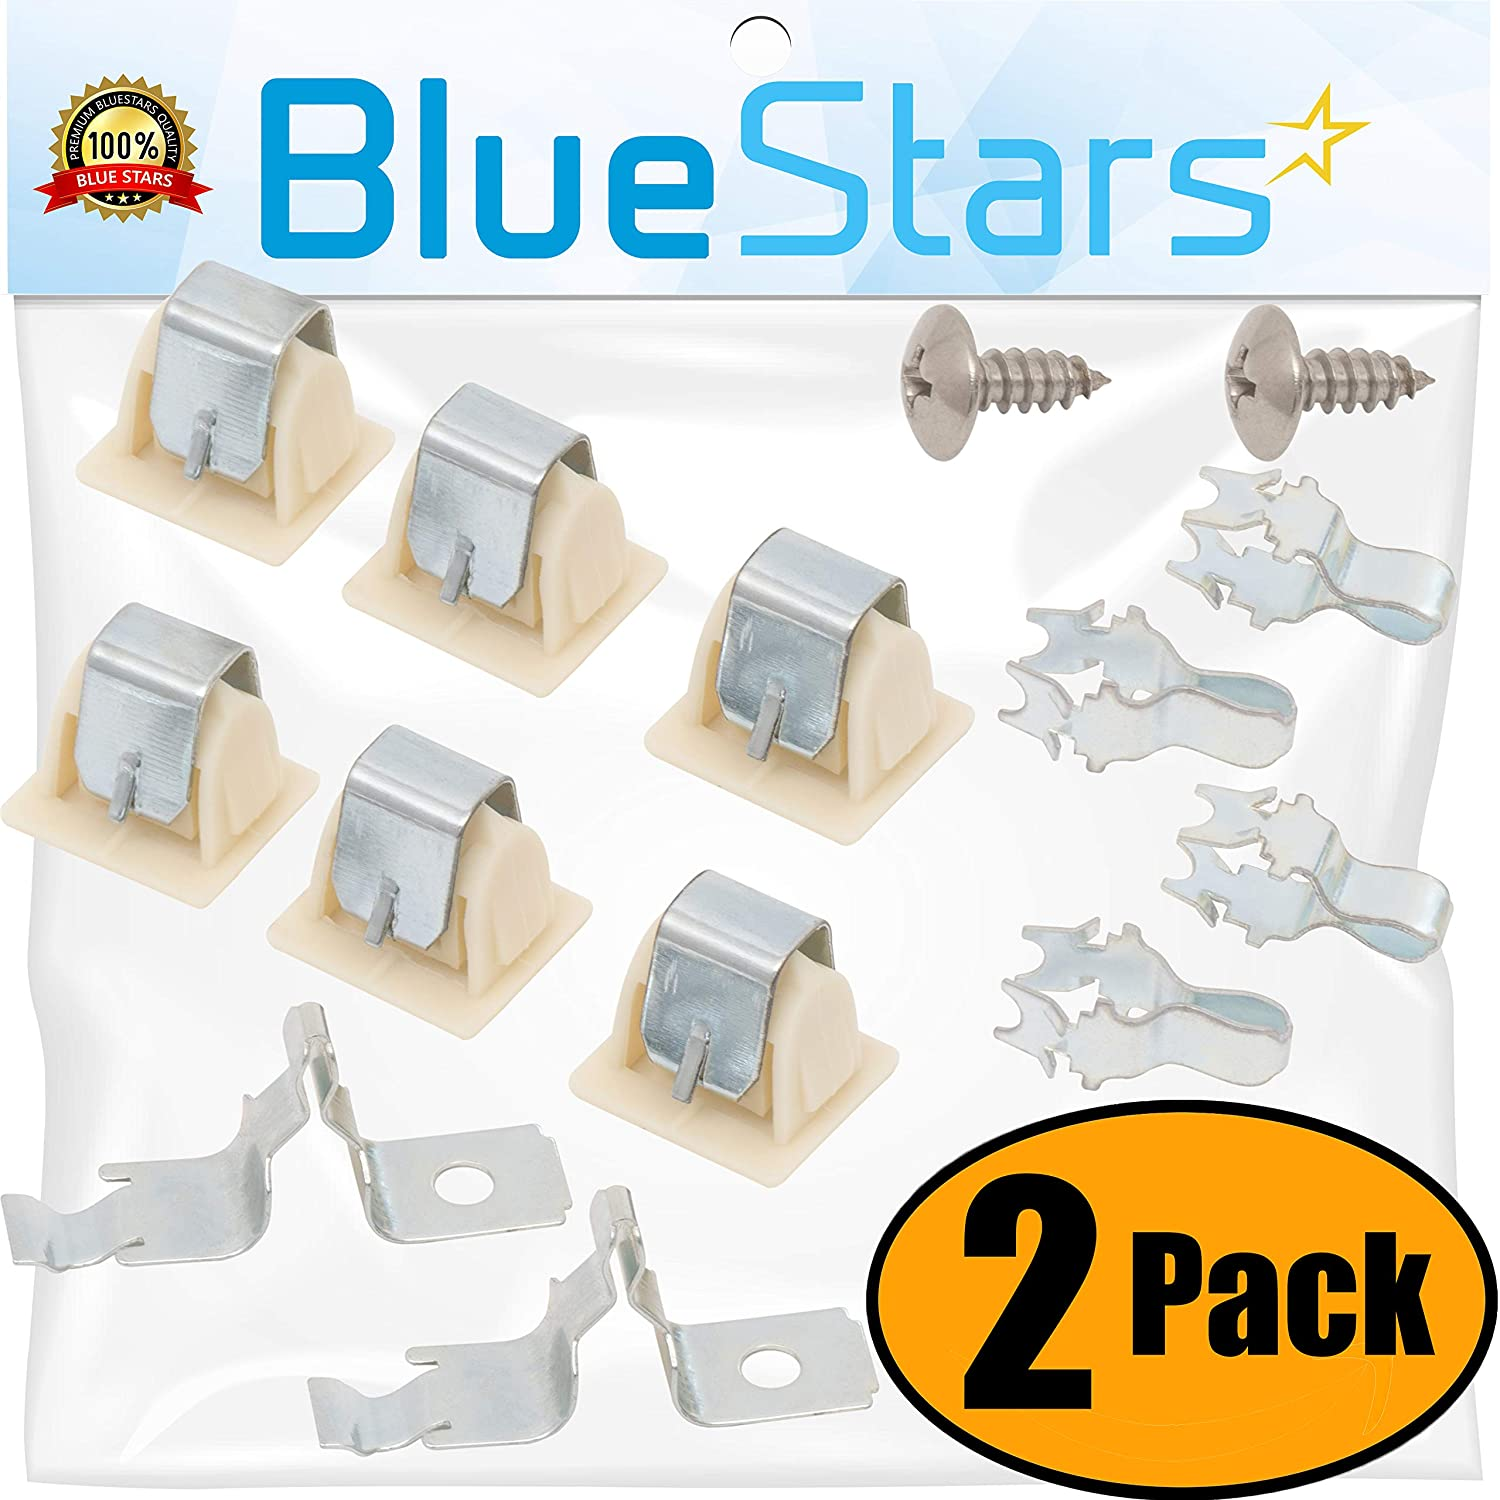 Ultra Durable 279570 Dryer Door Latch Strike Kit by Blue Stars - Exact Fit for Kenmore Whirlpool KitchenAid dryers - Replaces AP3094183, PS334230, 279570 - PACK OF 2 BlueStars